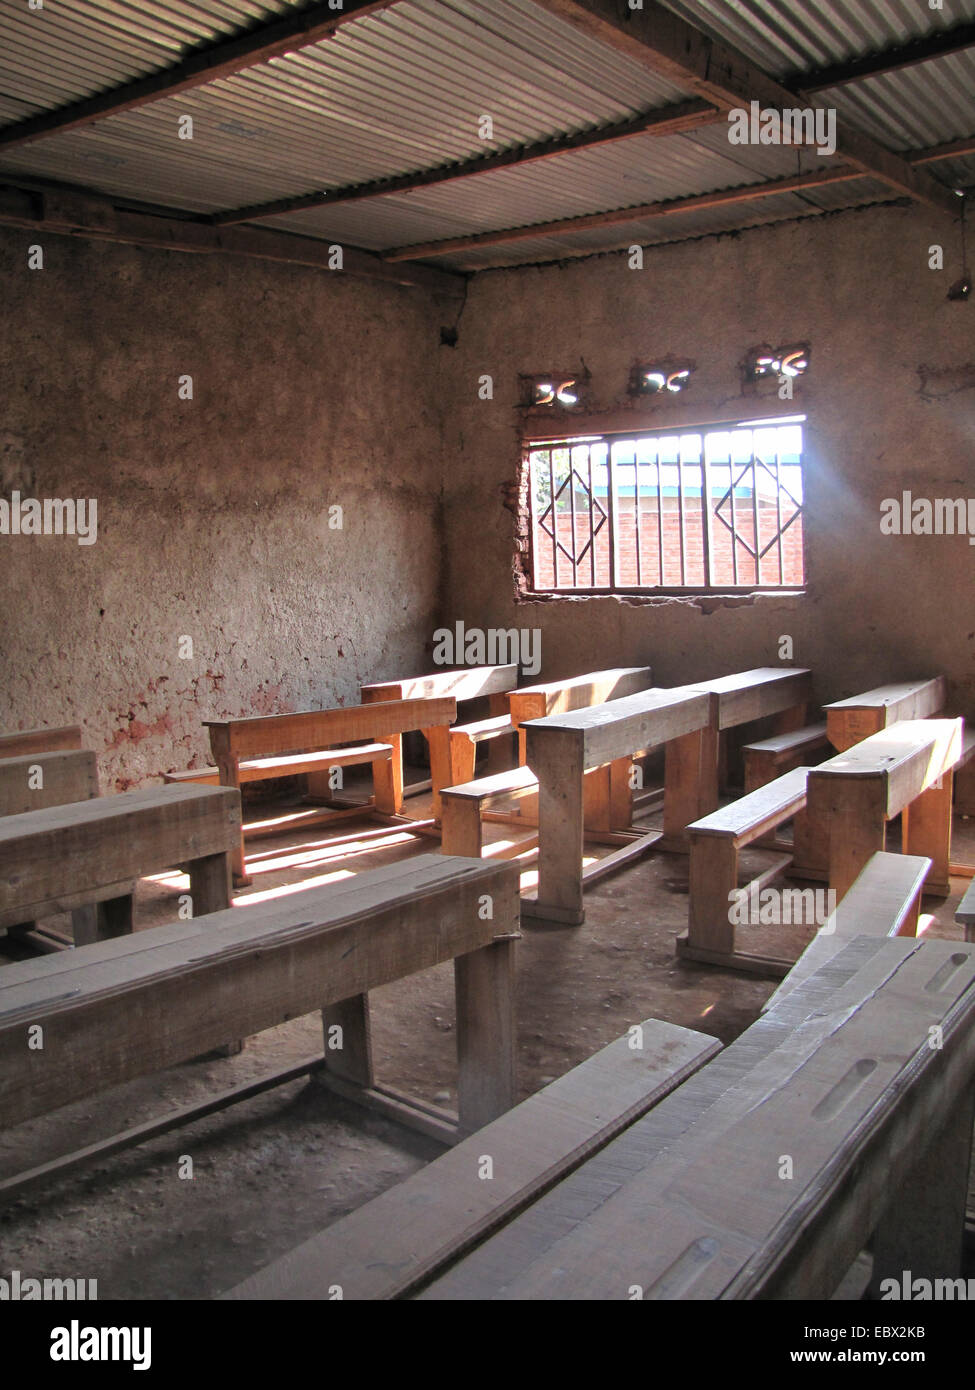 primitive class room with wooden benches, Burundi, Bujumbura mairie, Buyenzi, Bujumbura Stock Photo